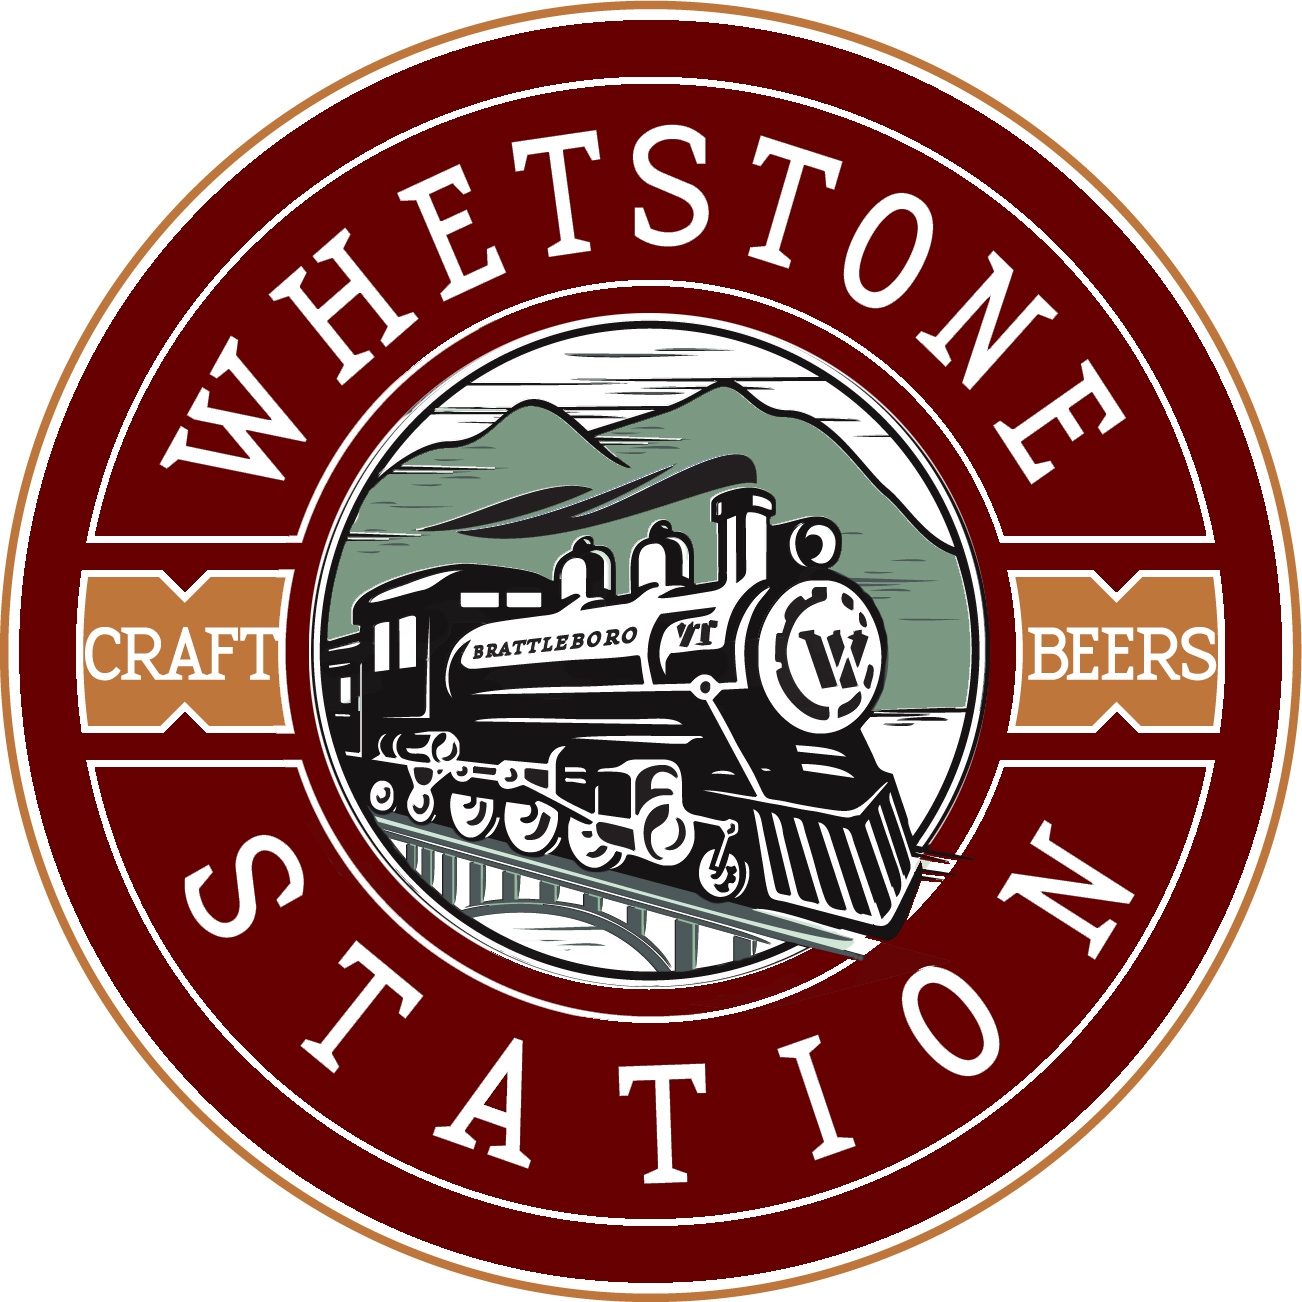 Whetstone Stationlogo